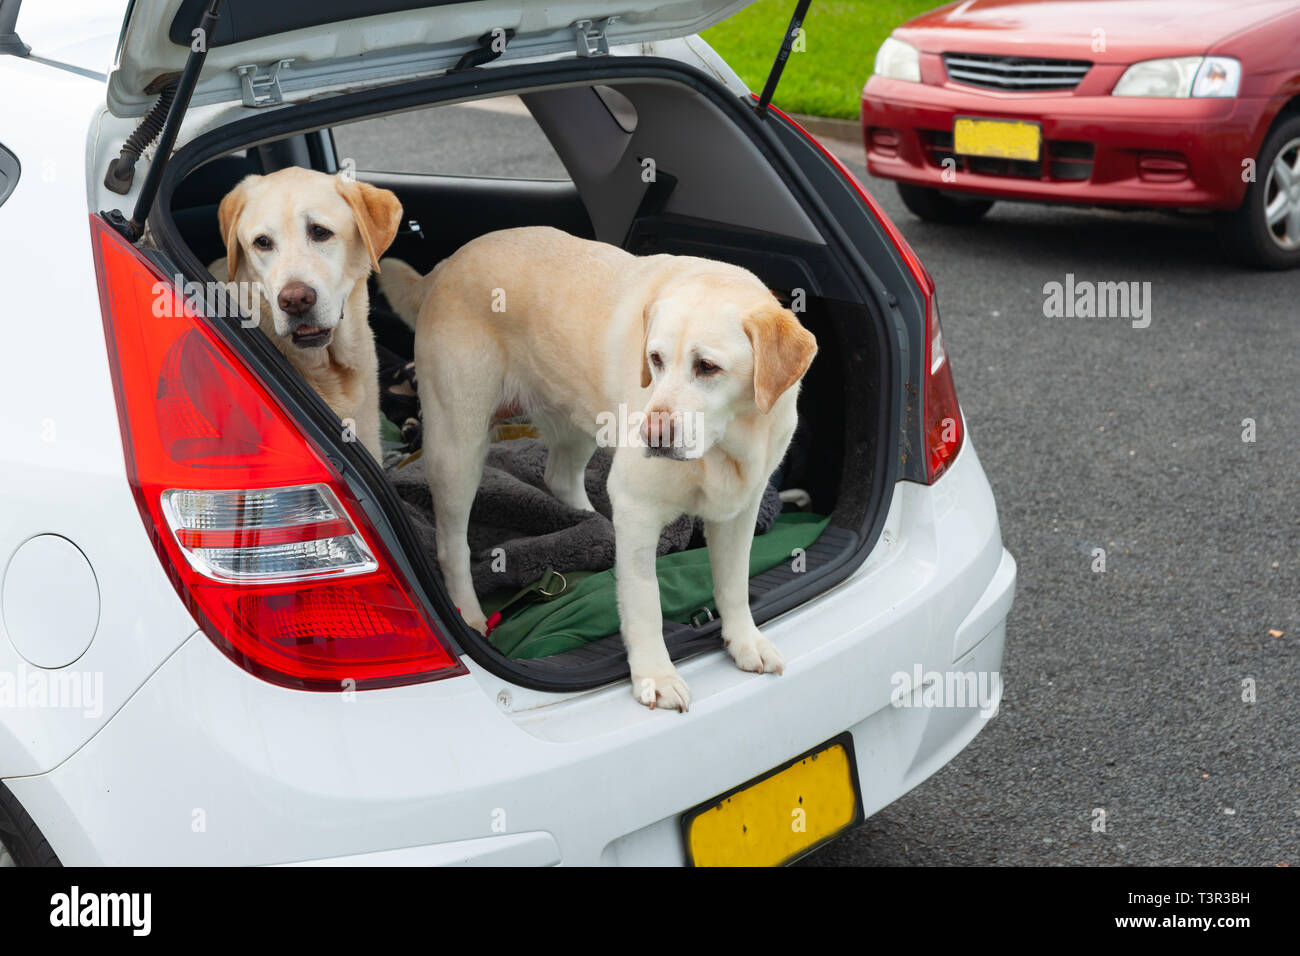 Two large dogs standing in open boot of car, obdiently waiting. - Stock Image